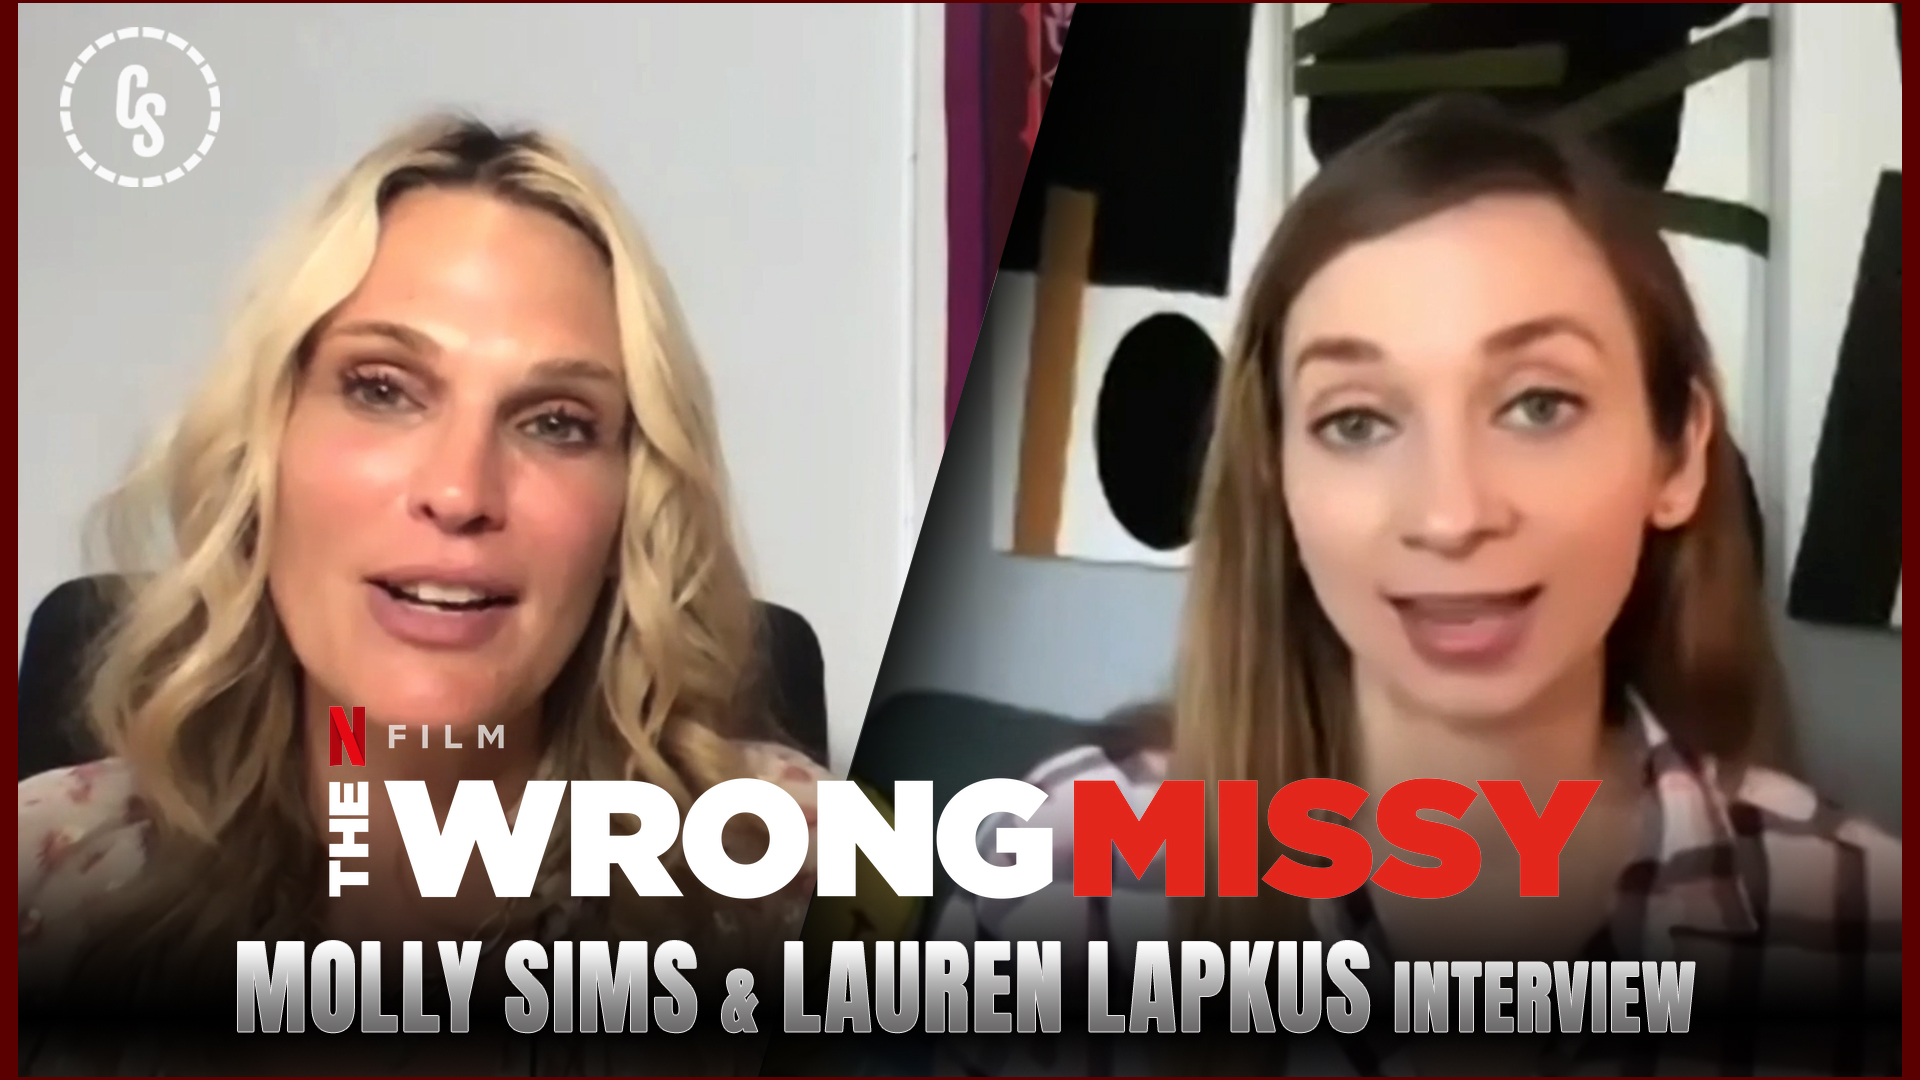 CS Video: The Wrong Missy Interviews With Molly Sims & Lauren Lapkus!